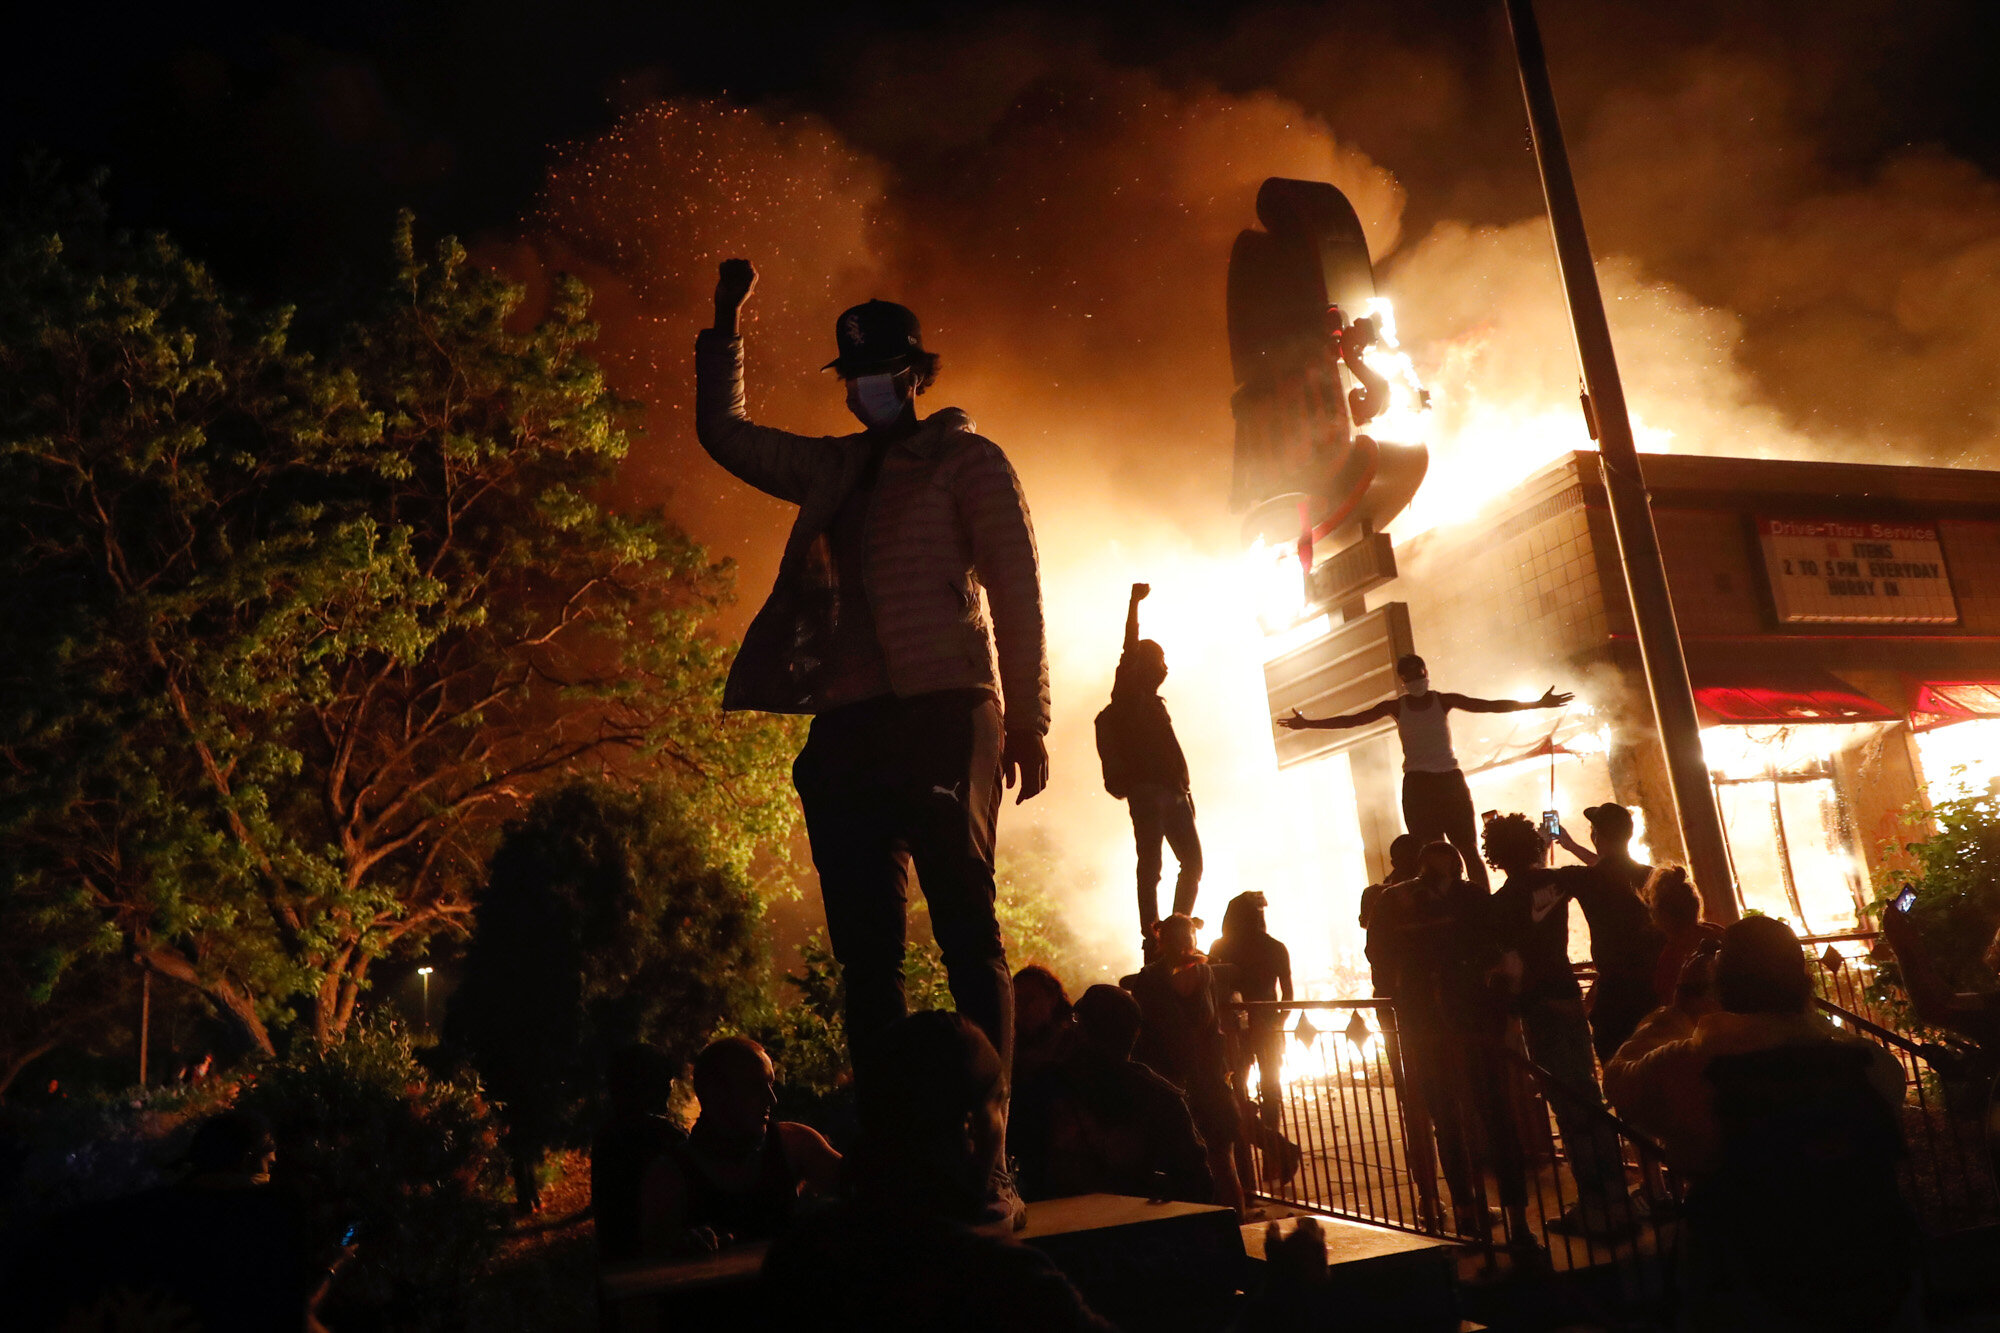 People demonstrate outside a burning Arby's fast food restaurant on May 29, 2020, in Minneapolis during a protest over the death of George Floyd, a Black man who died after a white Minneapolis police officer pressed a knee into his neck for several minutes. (AP Photo/John Minchillo)